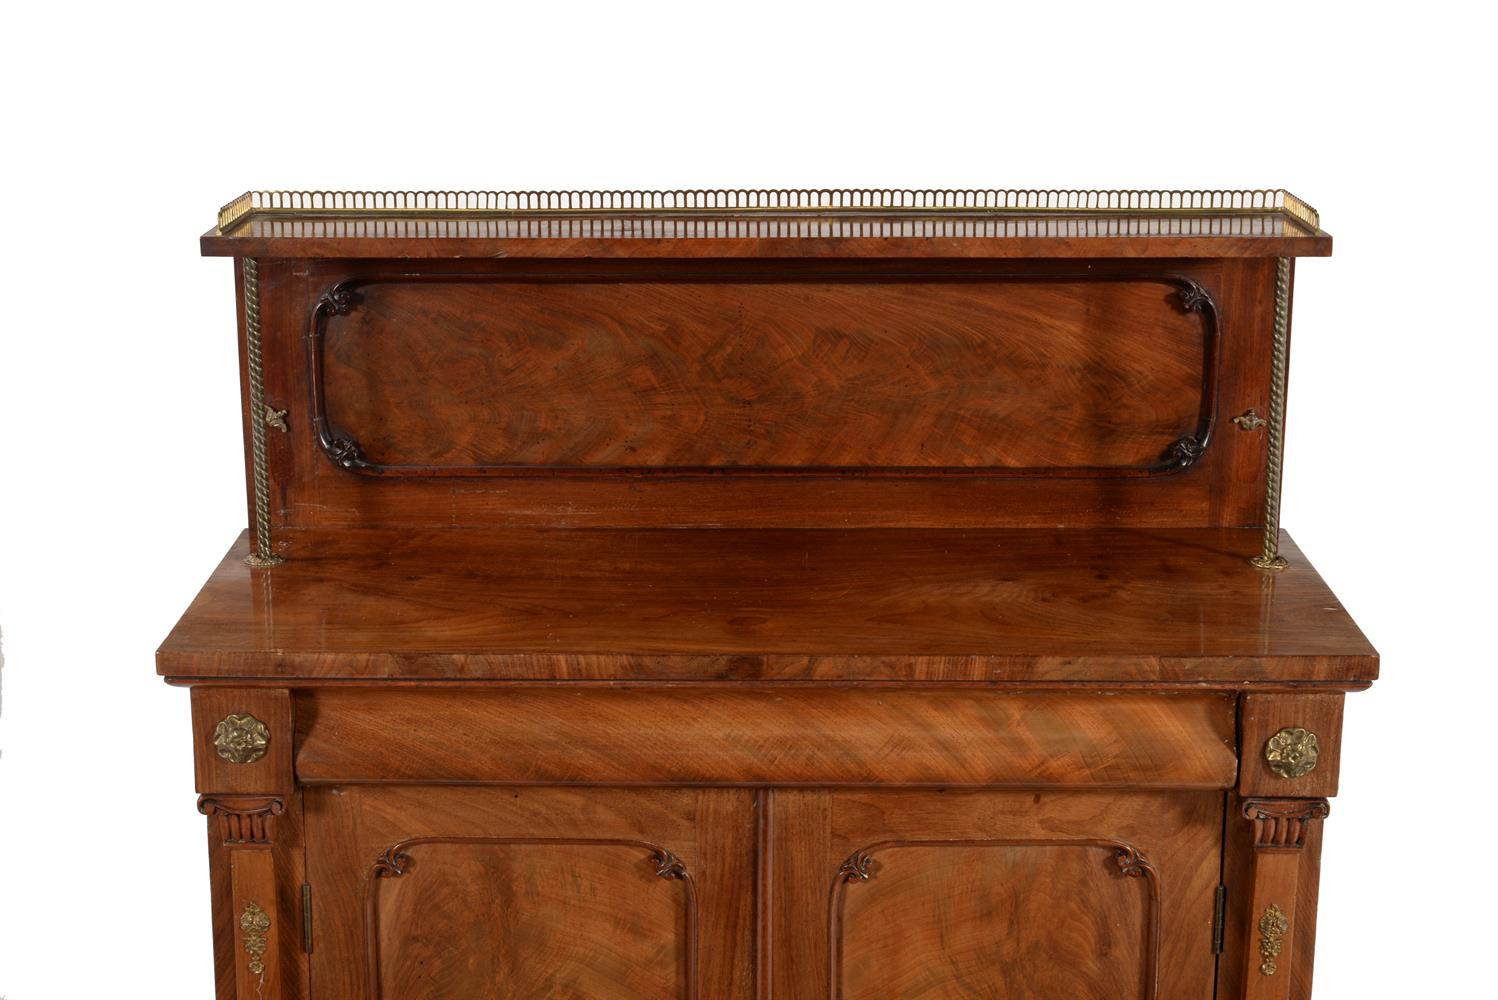 A Regency mahogany and gilt metal mounted chiffonier - Image 2 of 2